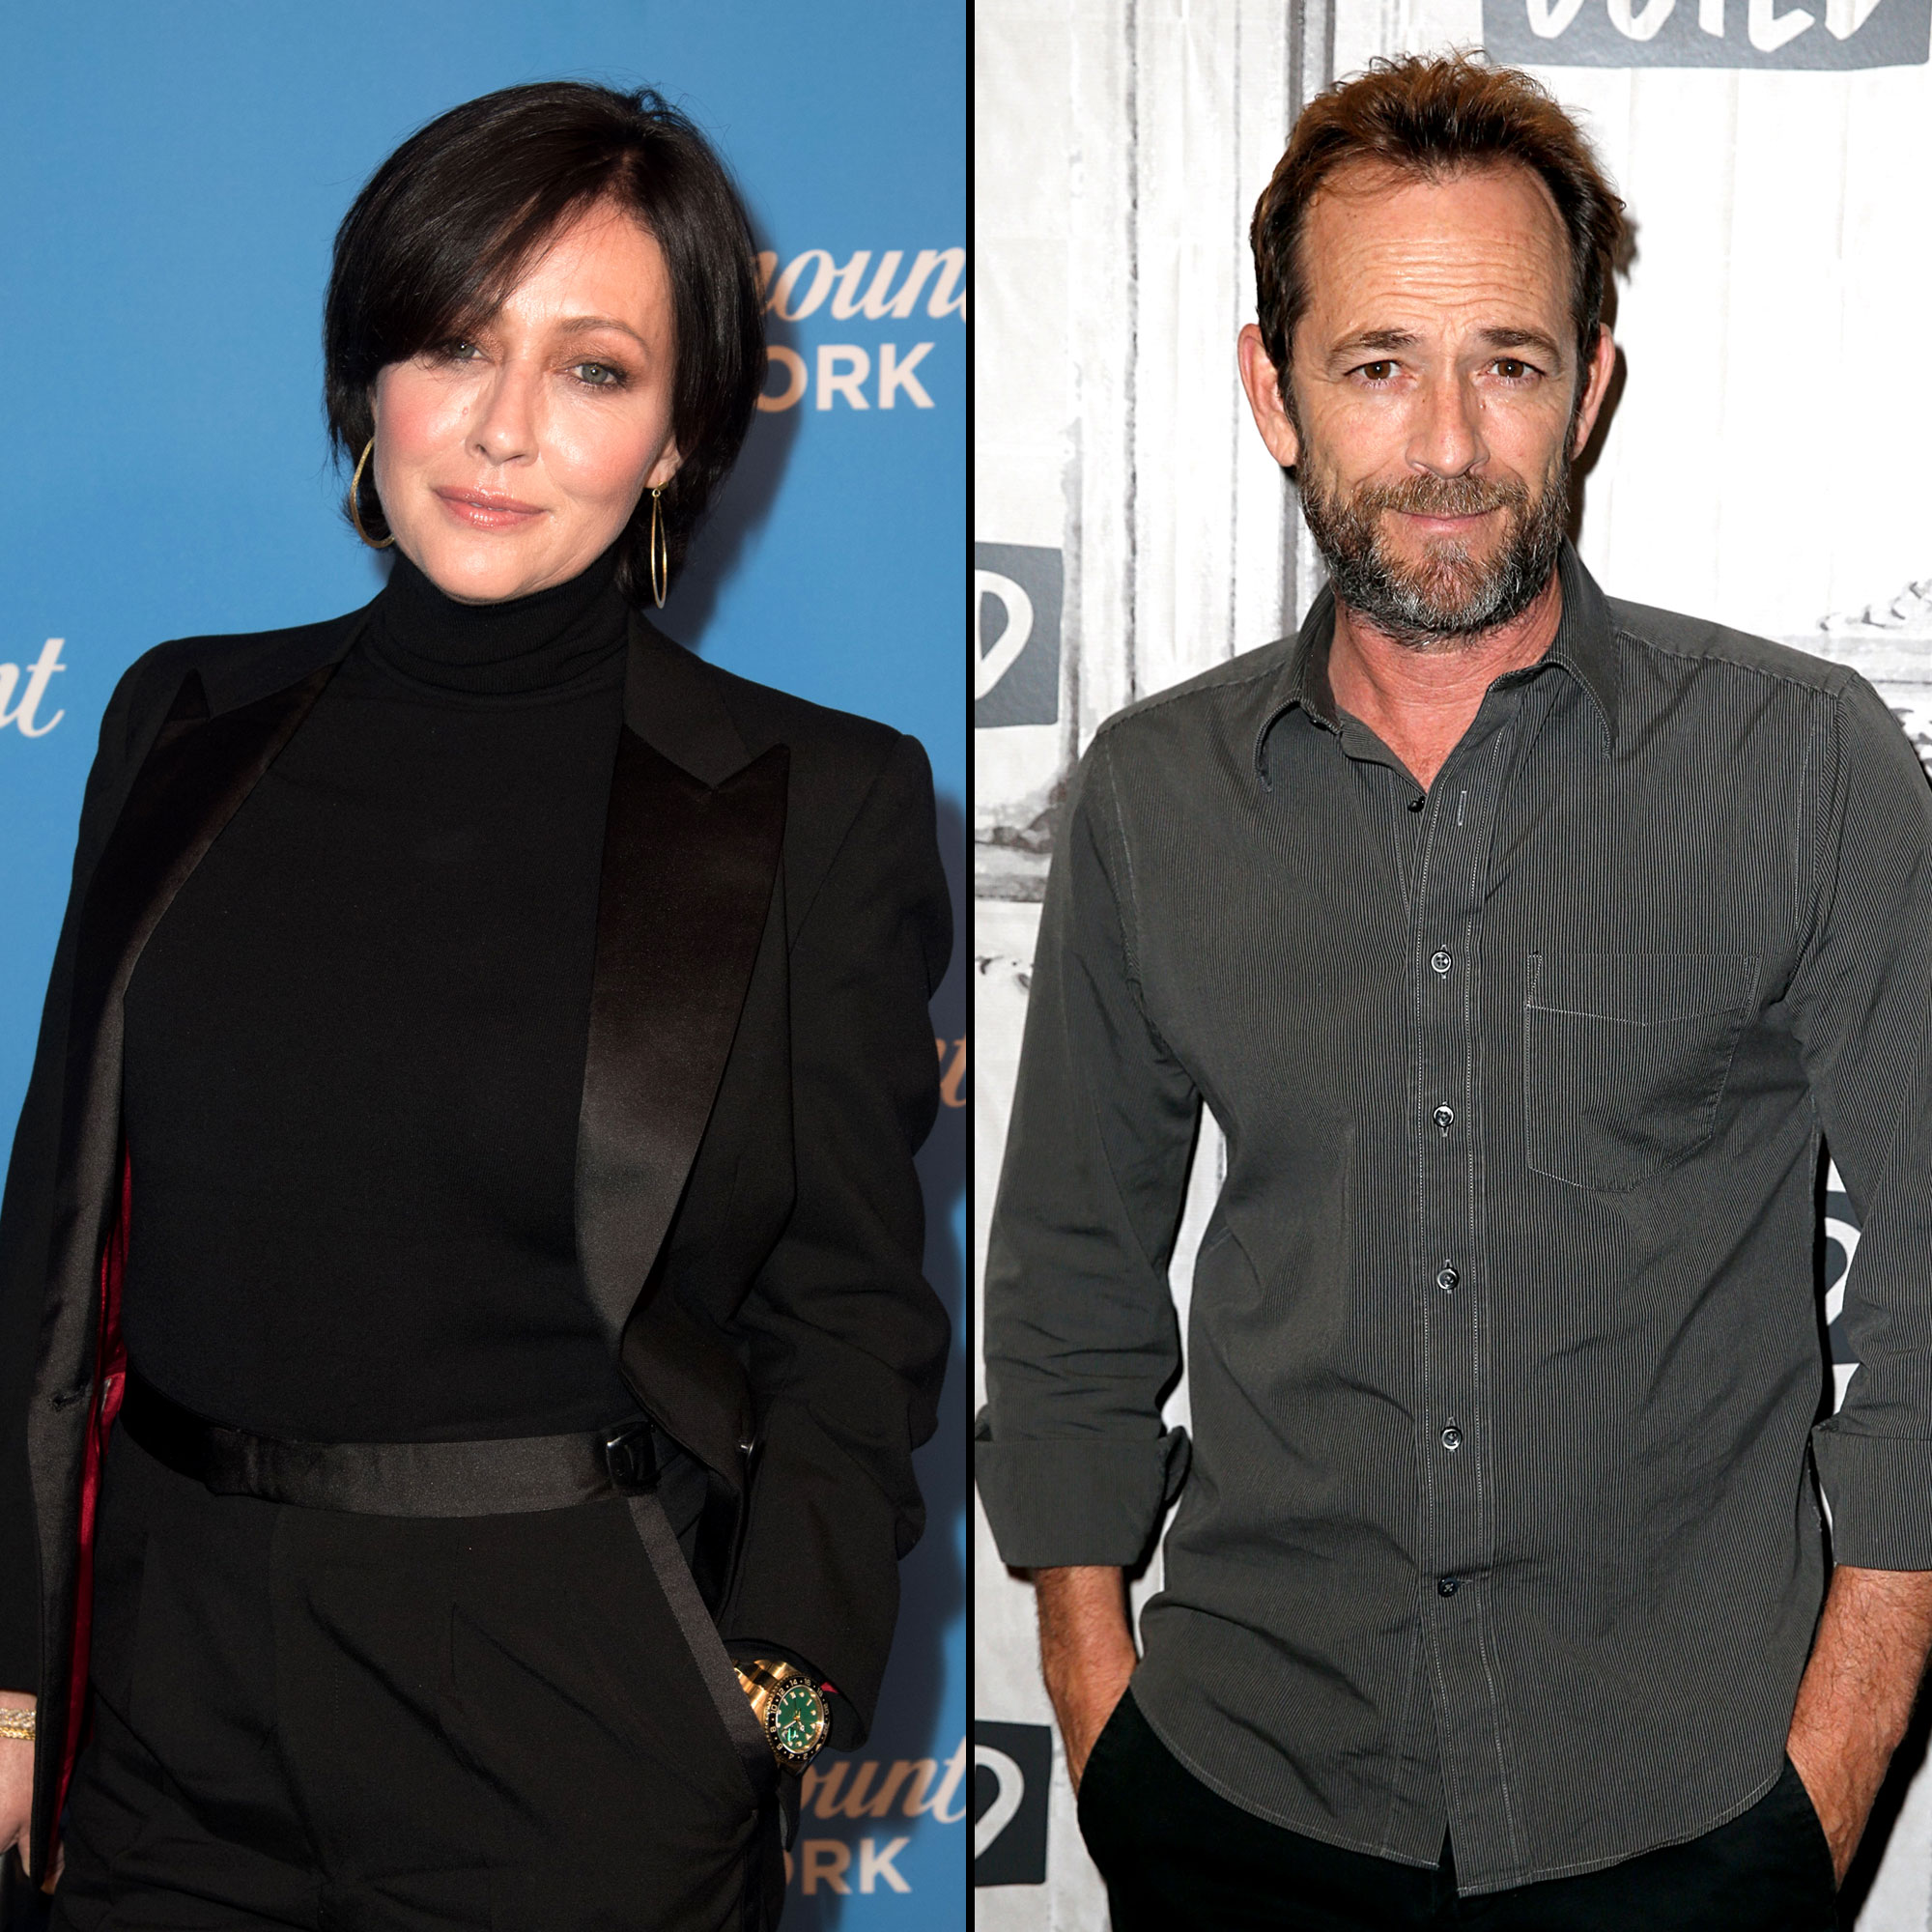 Shannen Doherty Starring in Riverdale's Luke Perry Tribute in 'Super Emotional' Role - Shannen Doherty and Luke Perry